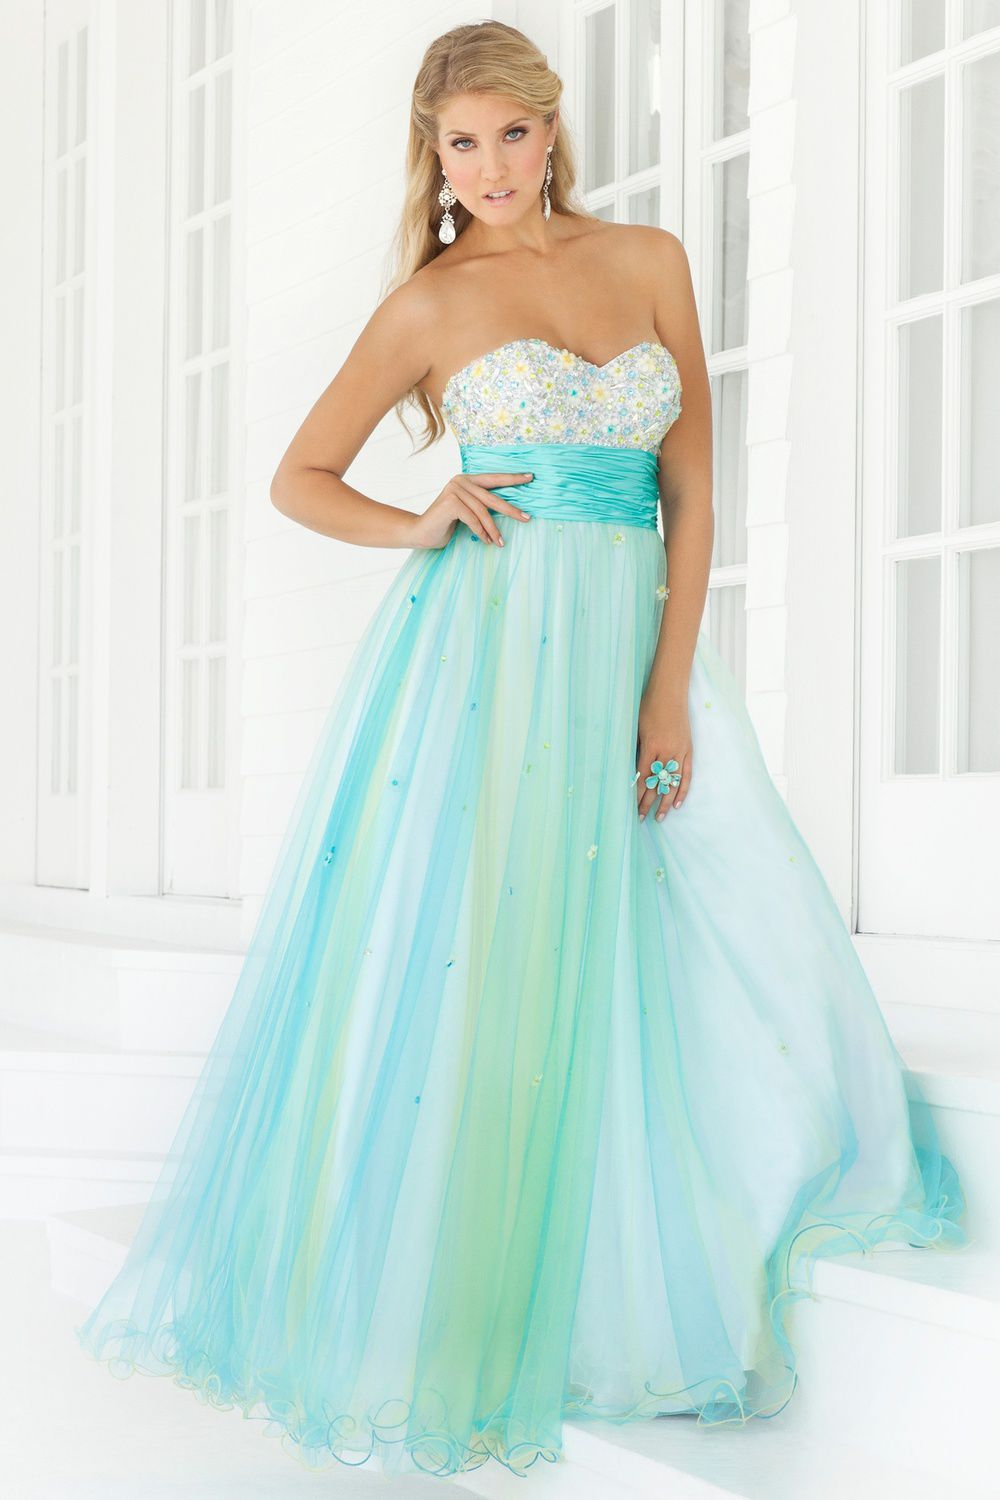 Buy 2013 Noble Bewitching Sweetheart Neckline Beads Working Column Blue Organza Satin Floor Length Prom Dress Online Cheap Prices